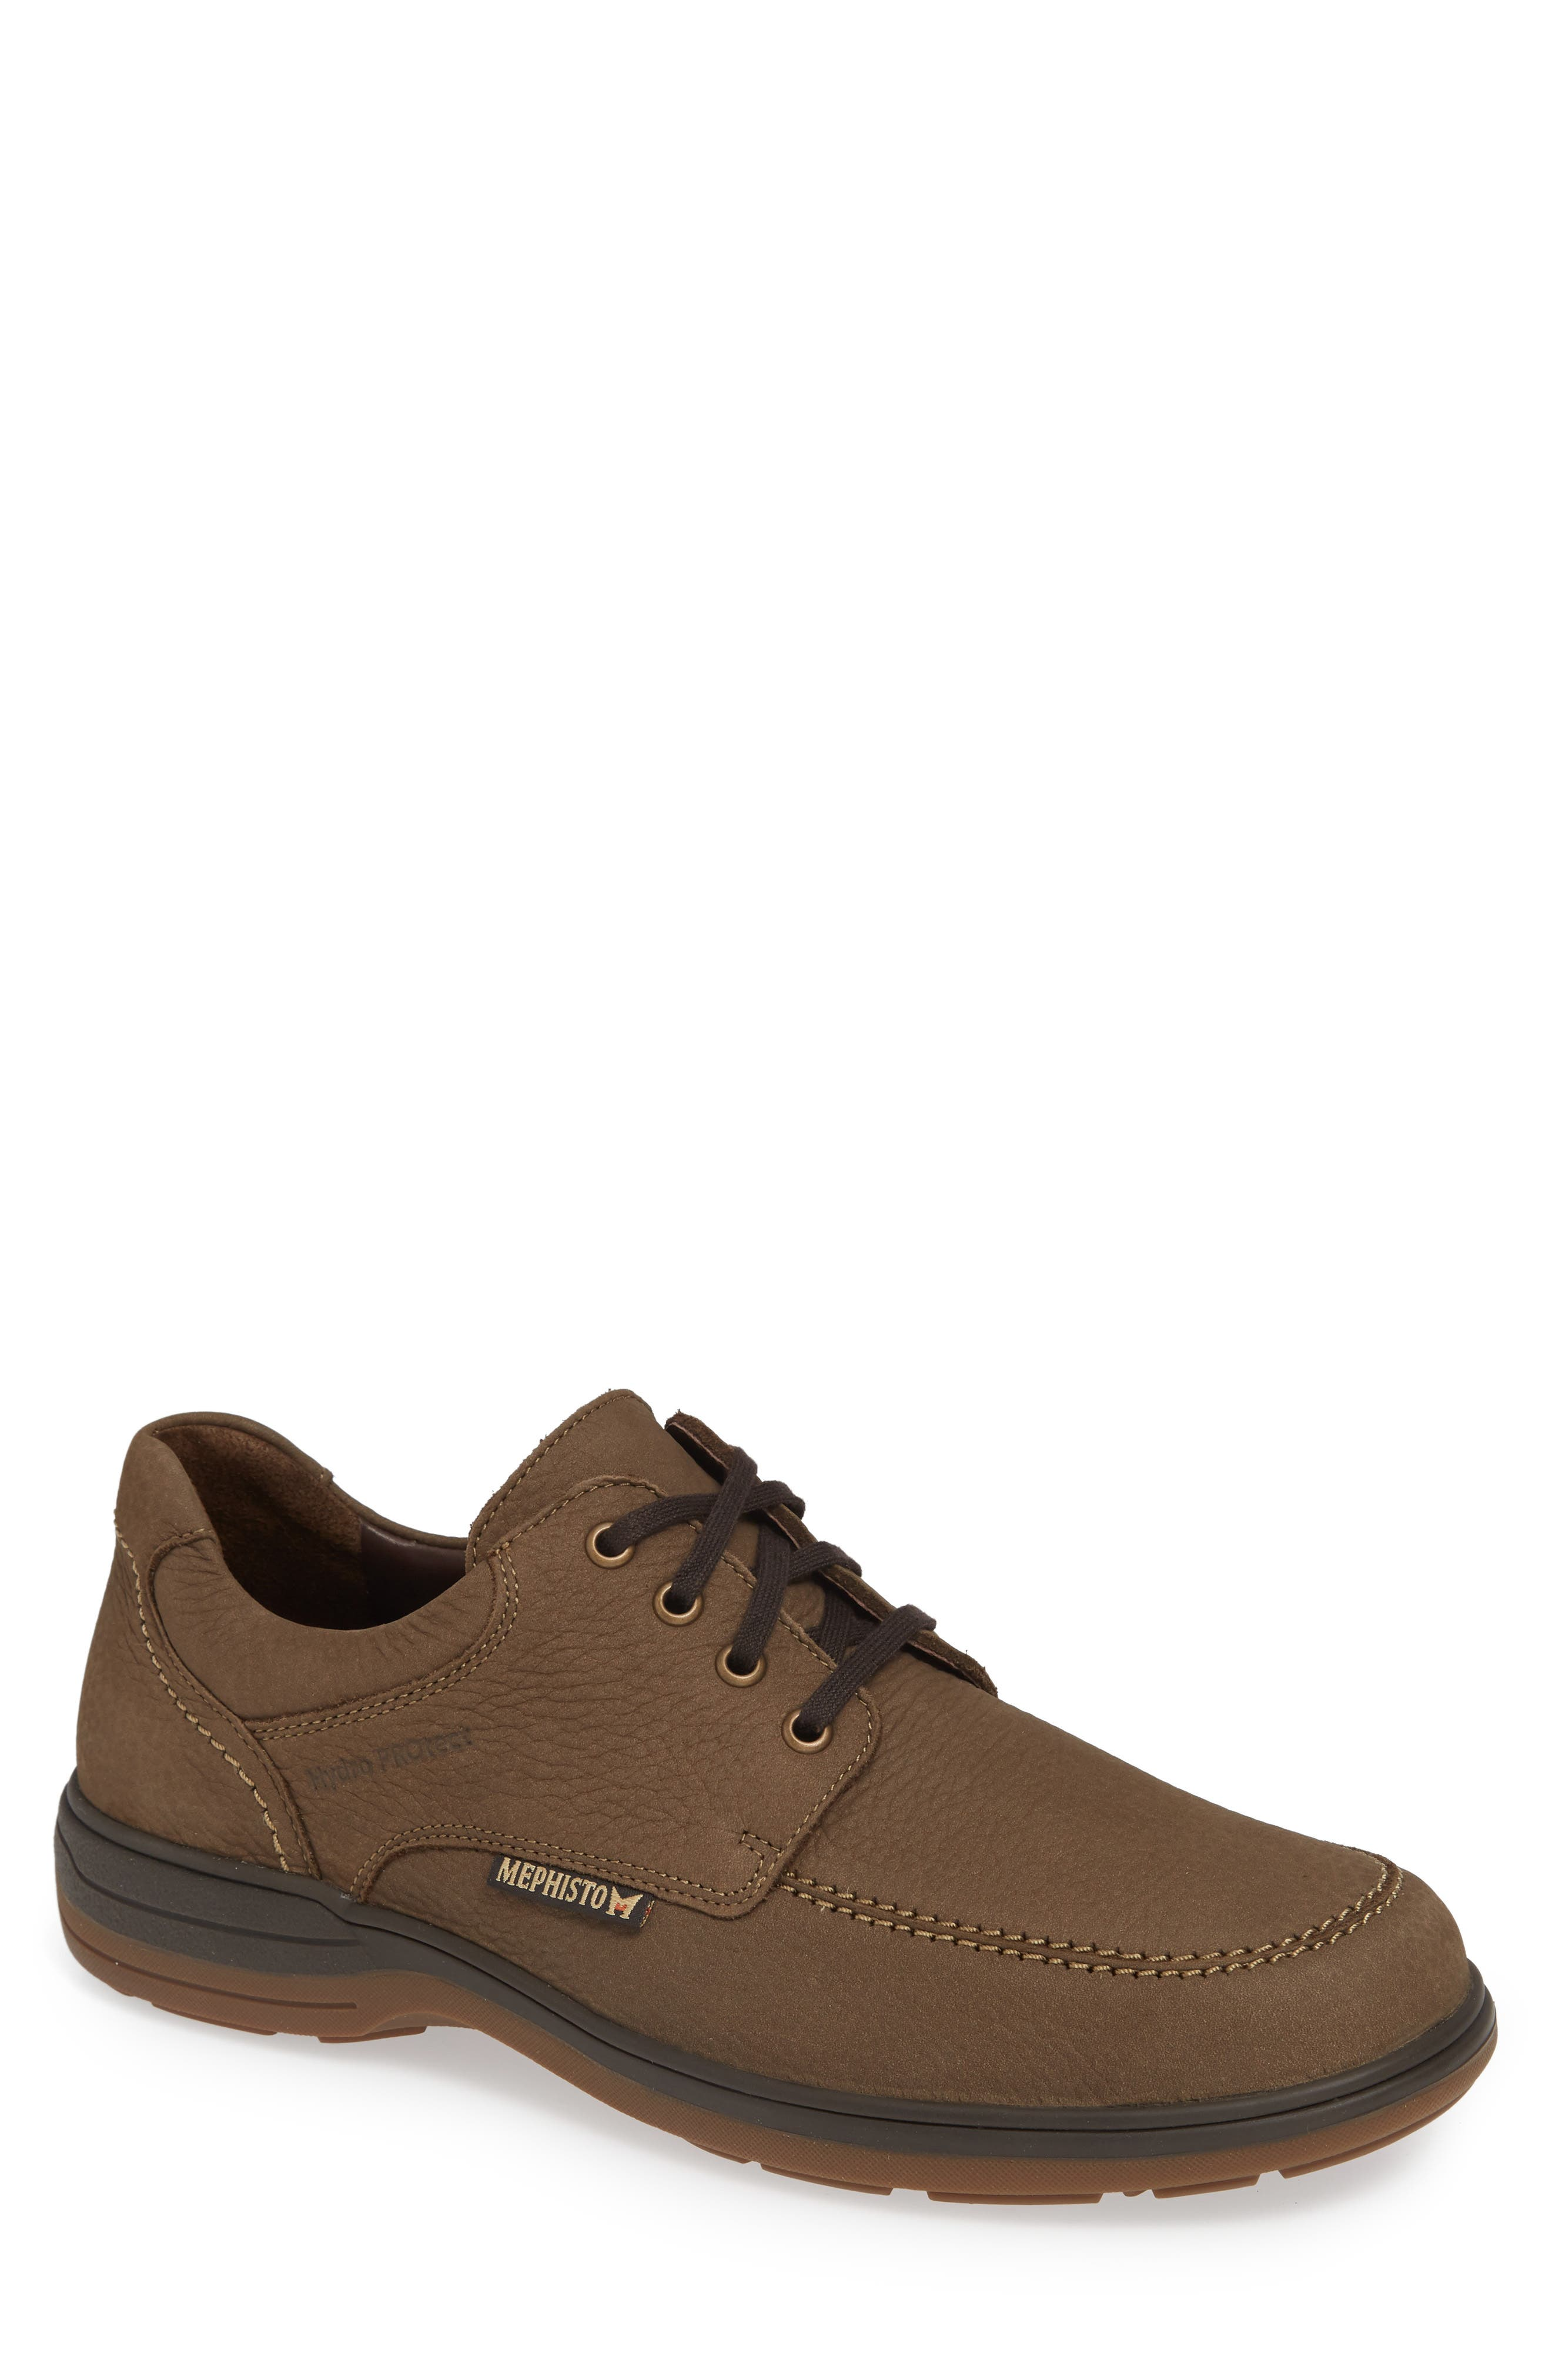 Douk HydroProtect Waterproof Moc Toe Derby,                             Main thumbnail 1, color,                             CAMEL SPORTBUCK